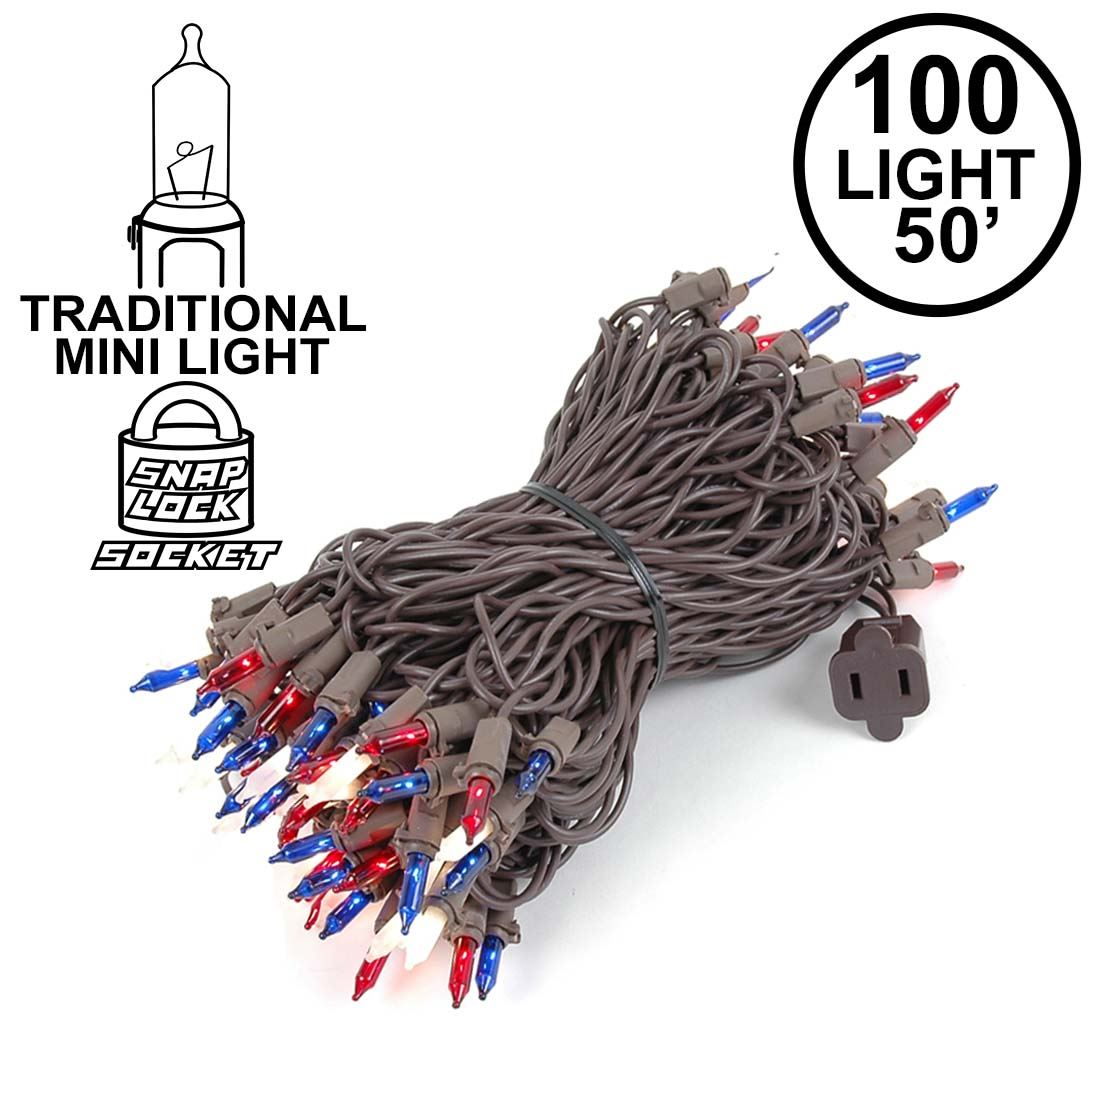 Picture of Red/White/Blue Christmas Mini Lights 100 Light 50 Feet Long on Brown Wire